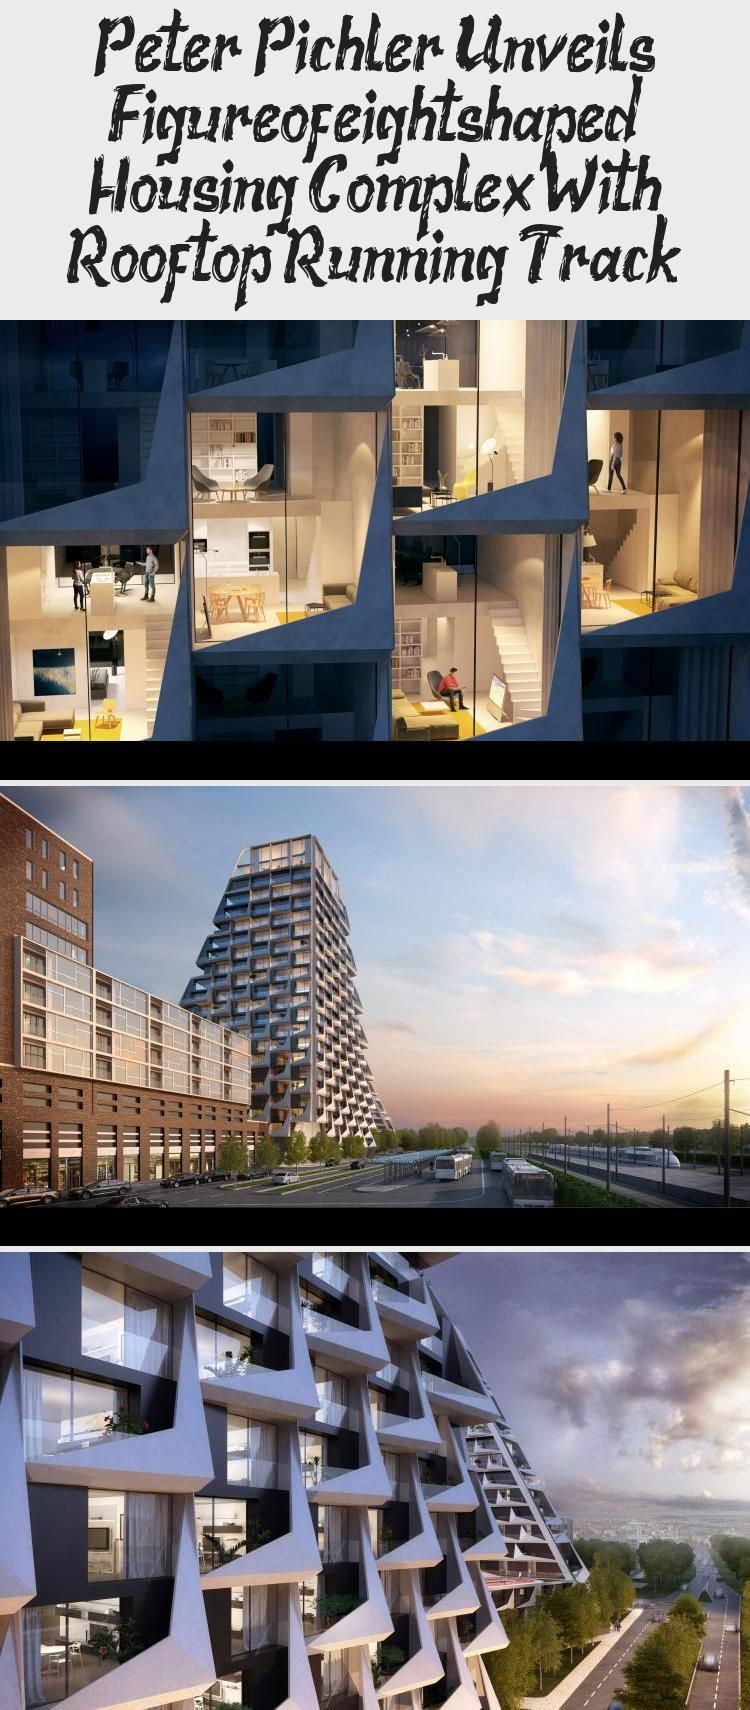 A Rooftop Running Track Will Connect The Two Towers Of This Housing Complex Designed By Milan Based Peter Pichle In 2020 Architecture Sustainable Architecture Rooftop